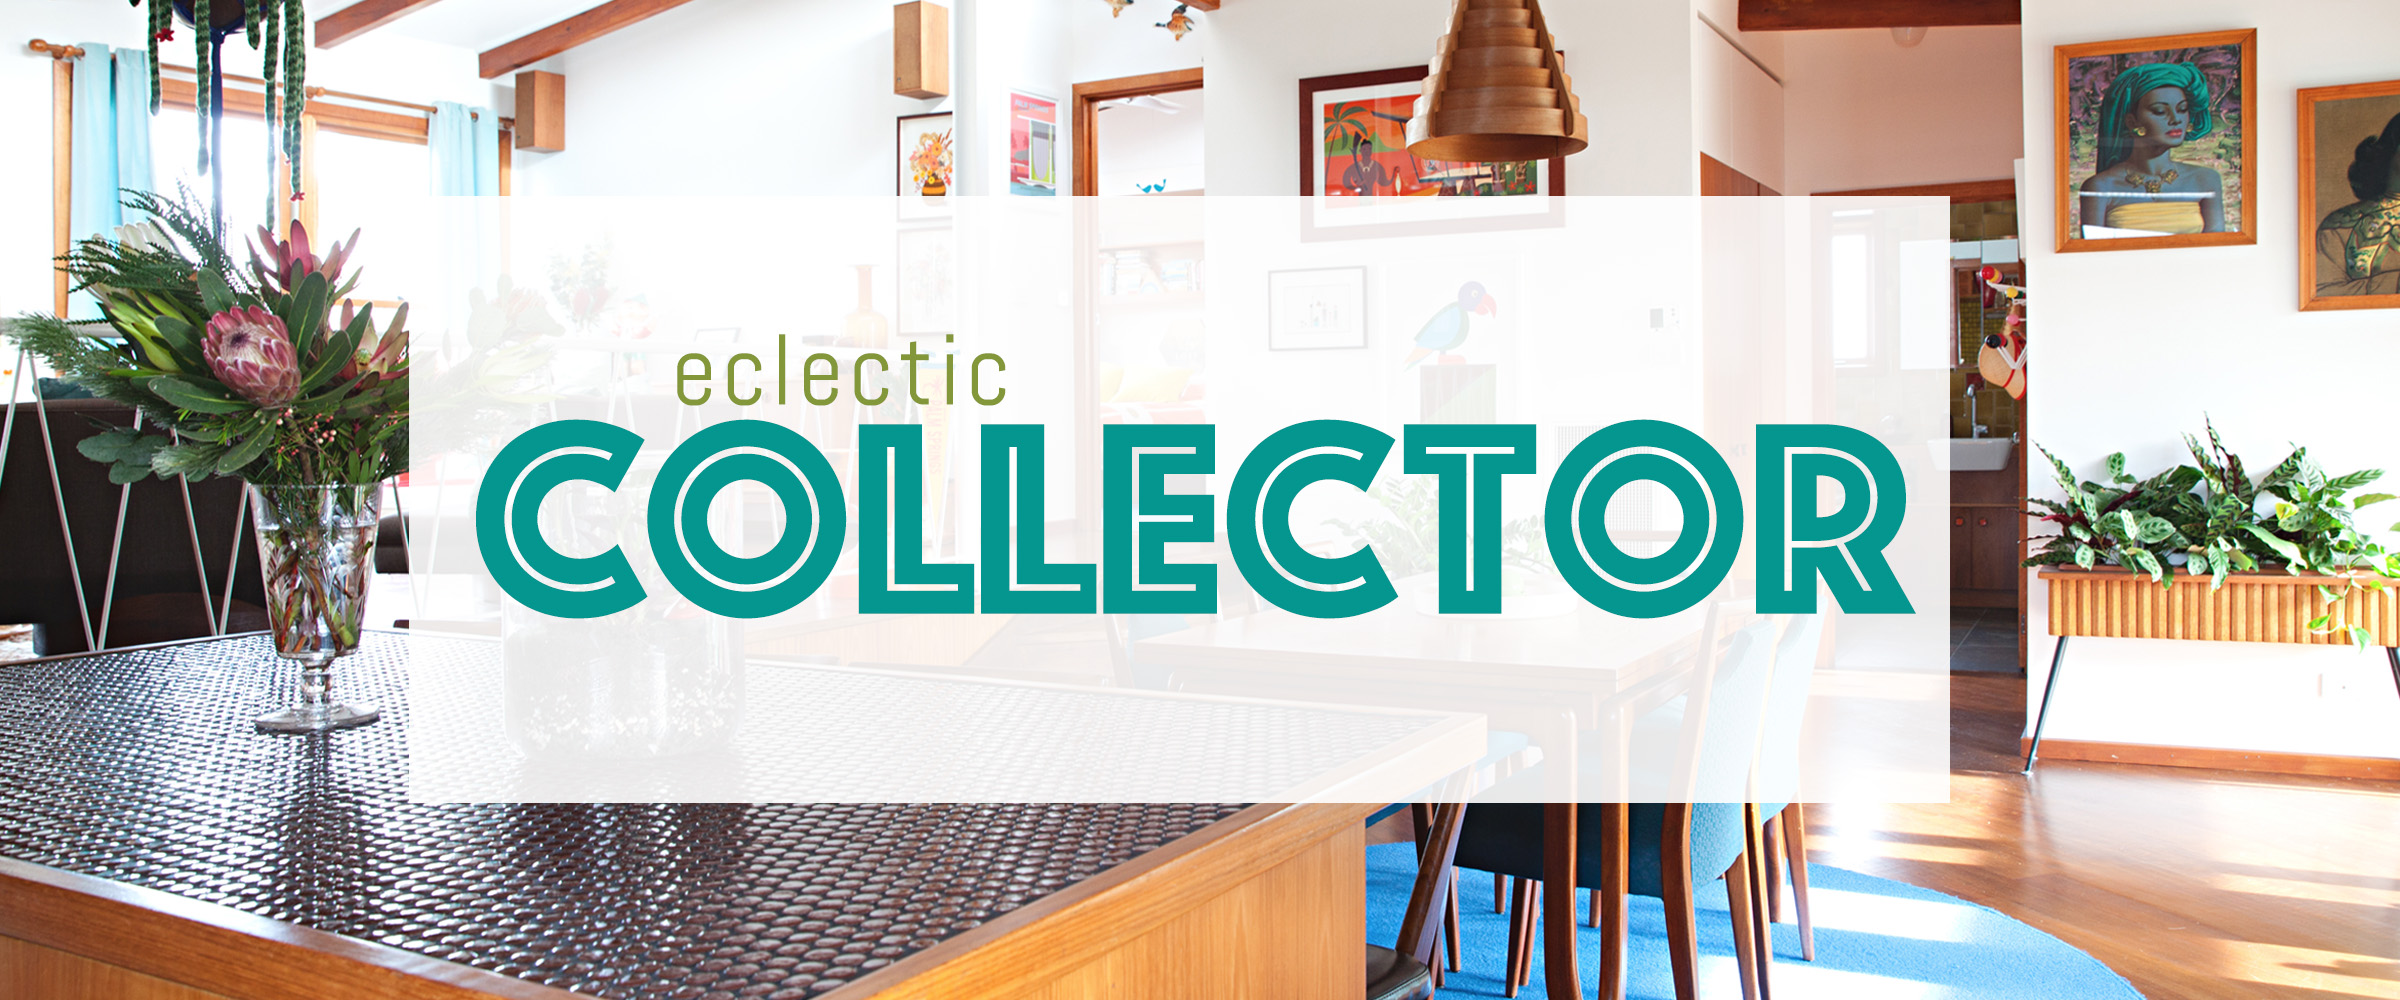 1b92a2ebd514b1d82da40d41c1ecd43d09c586ec & Discover Your Home Decor Personality: Eclectic Collector | Apartment ...